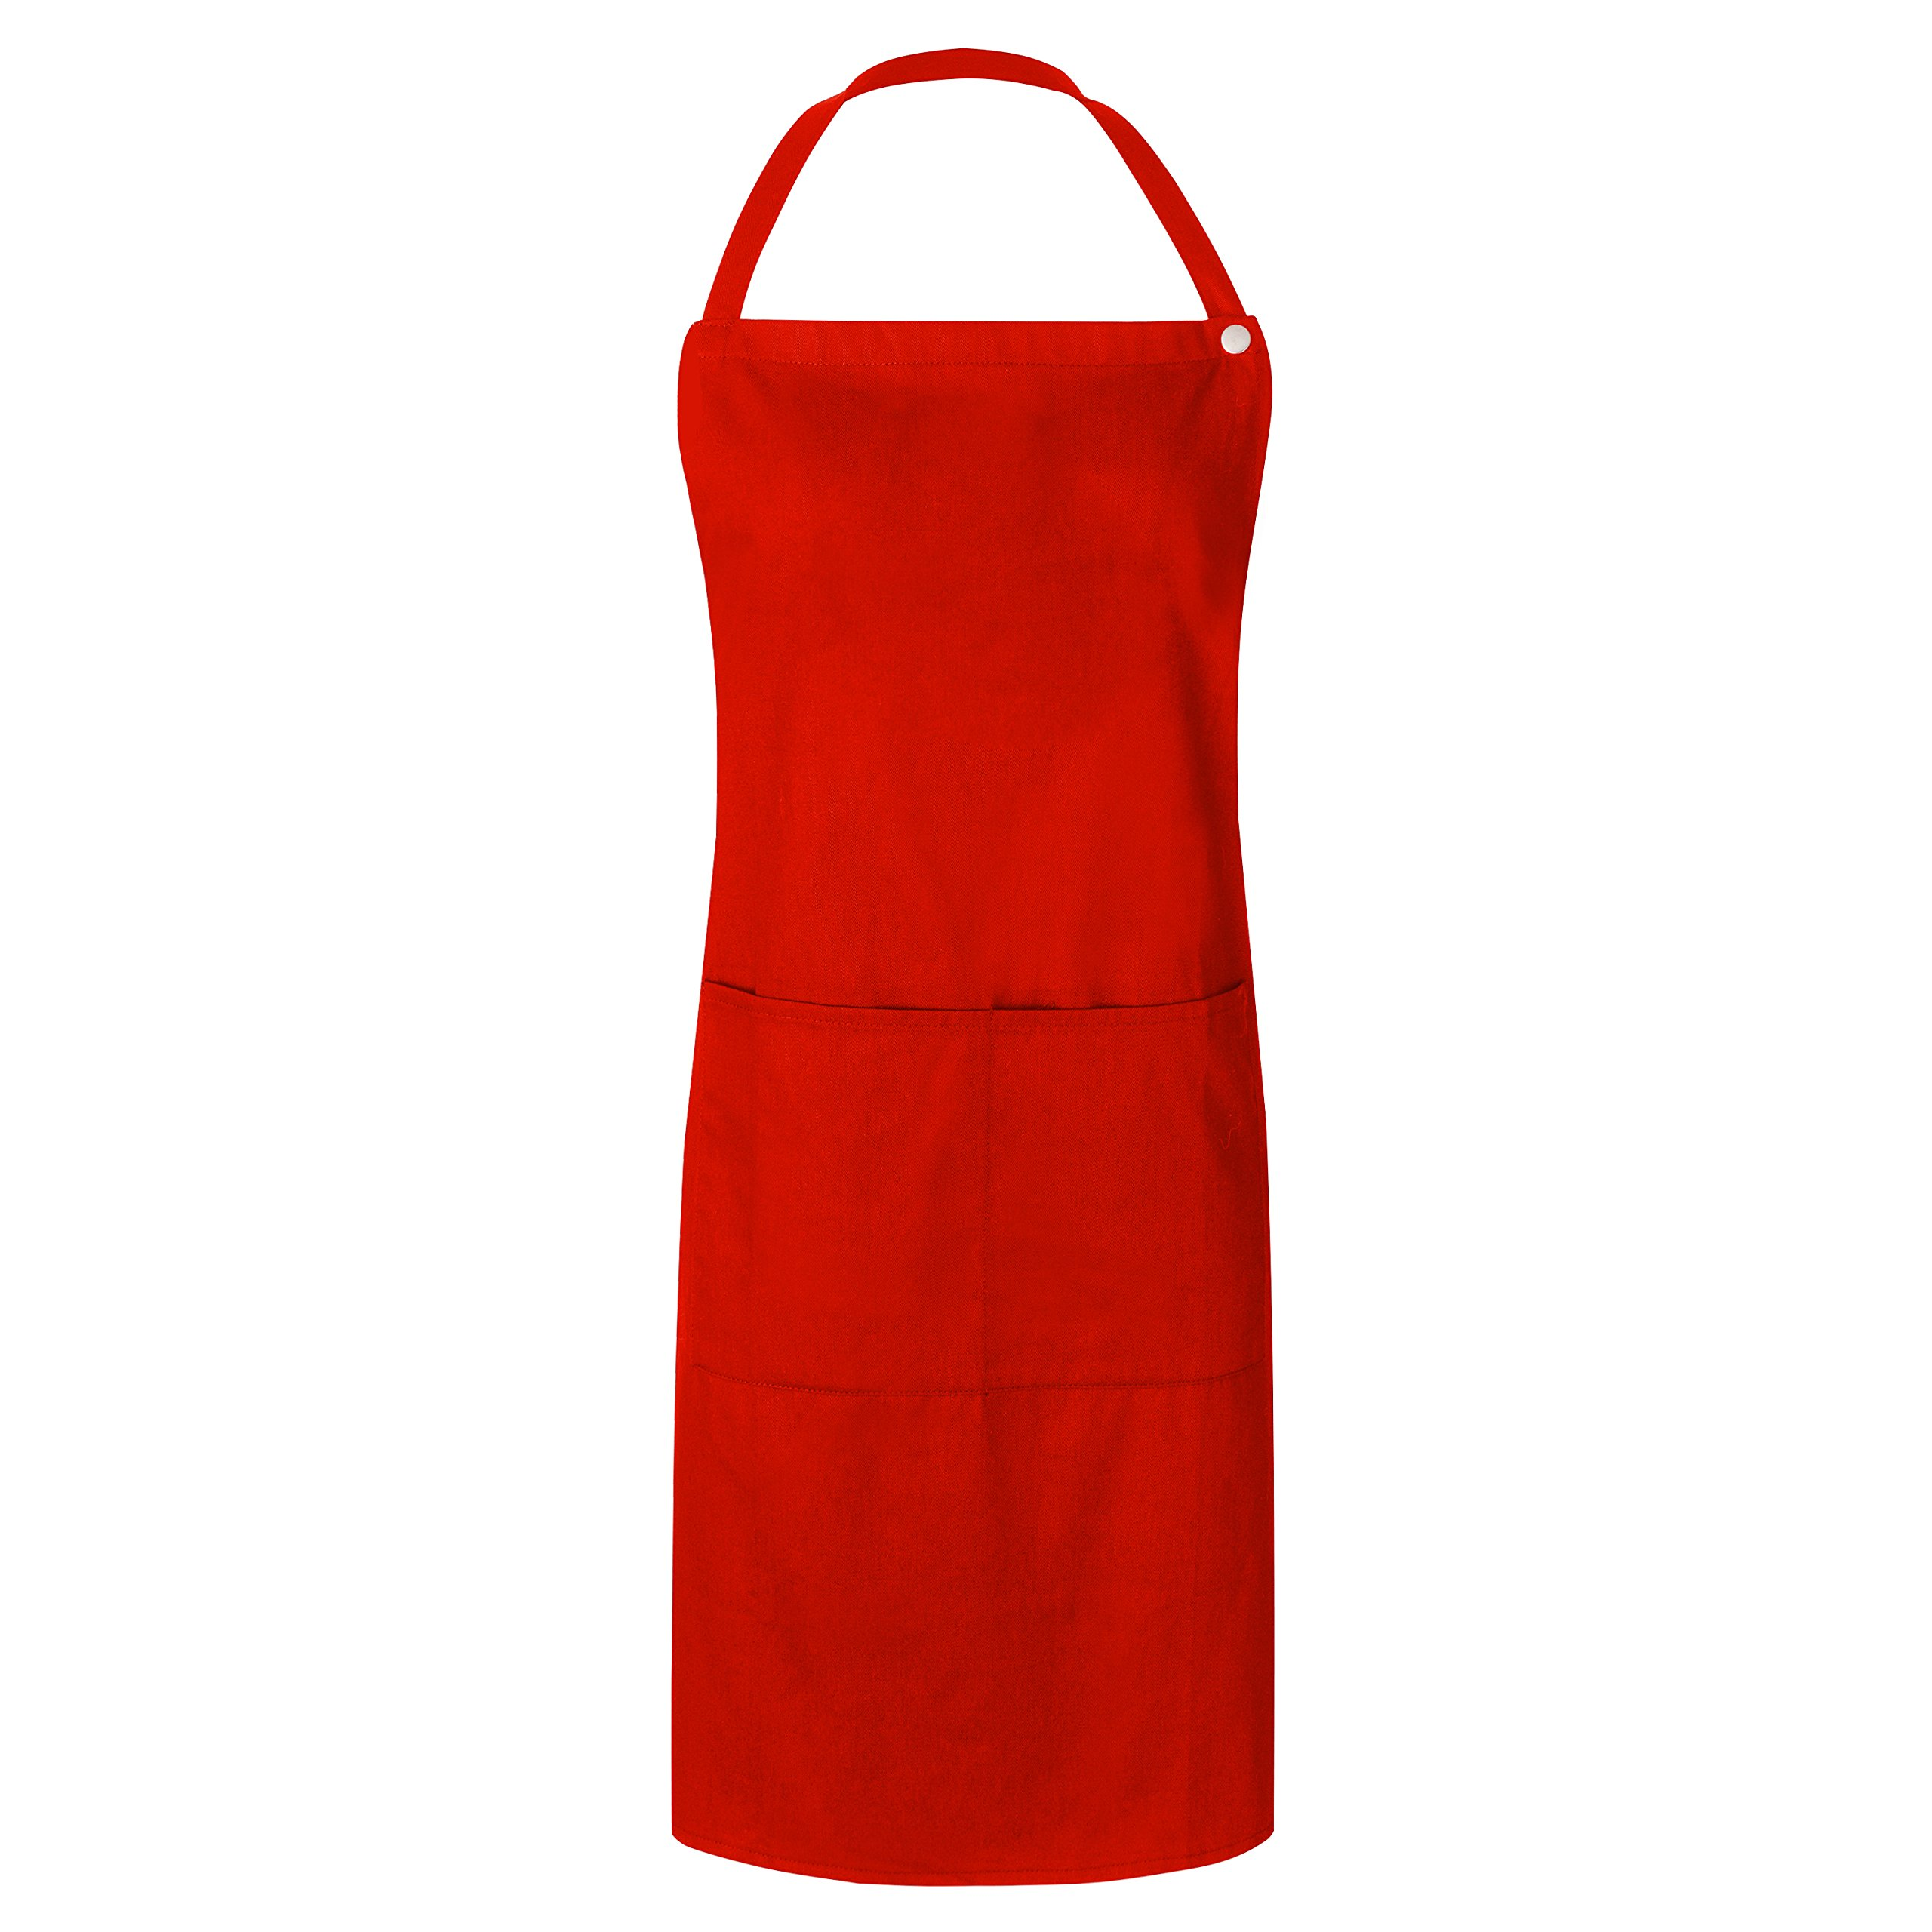 Red Bib Apron With Pockets and Snap Closure – 100% Cotton Reusable and Washable Smock for Hairstylists, Barbers, Salons, Kitchens and More, Adjustable Ties, Men's and Women's - WorkDay